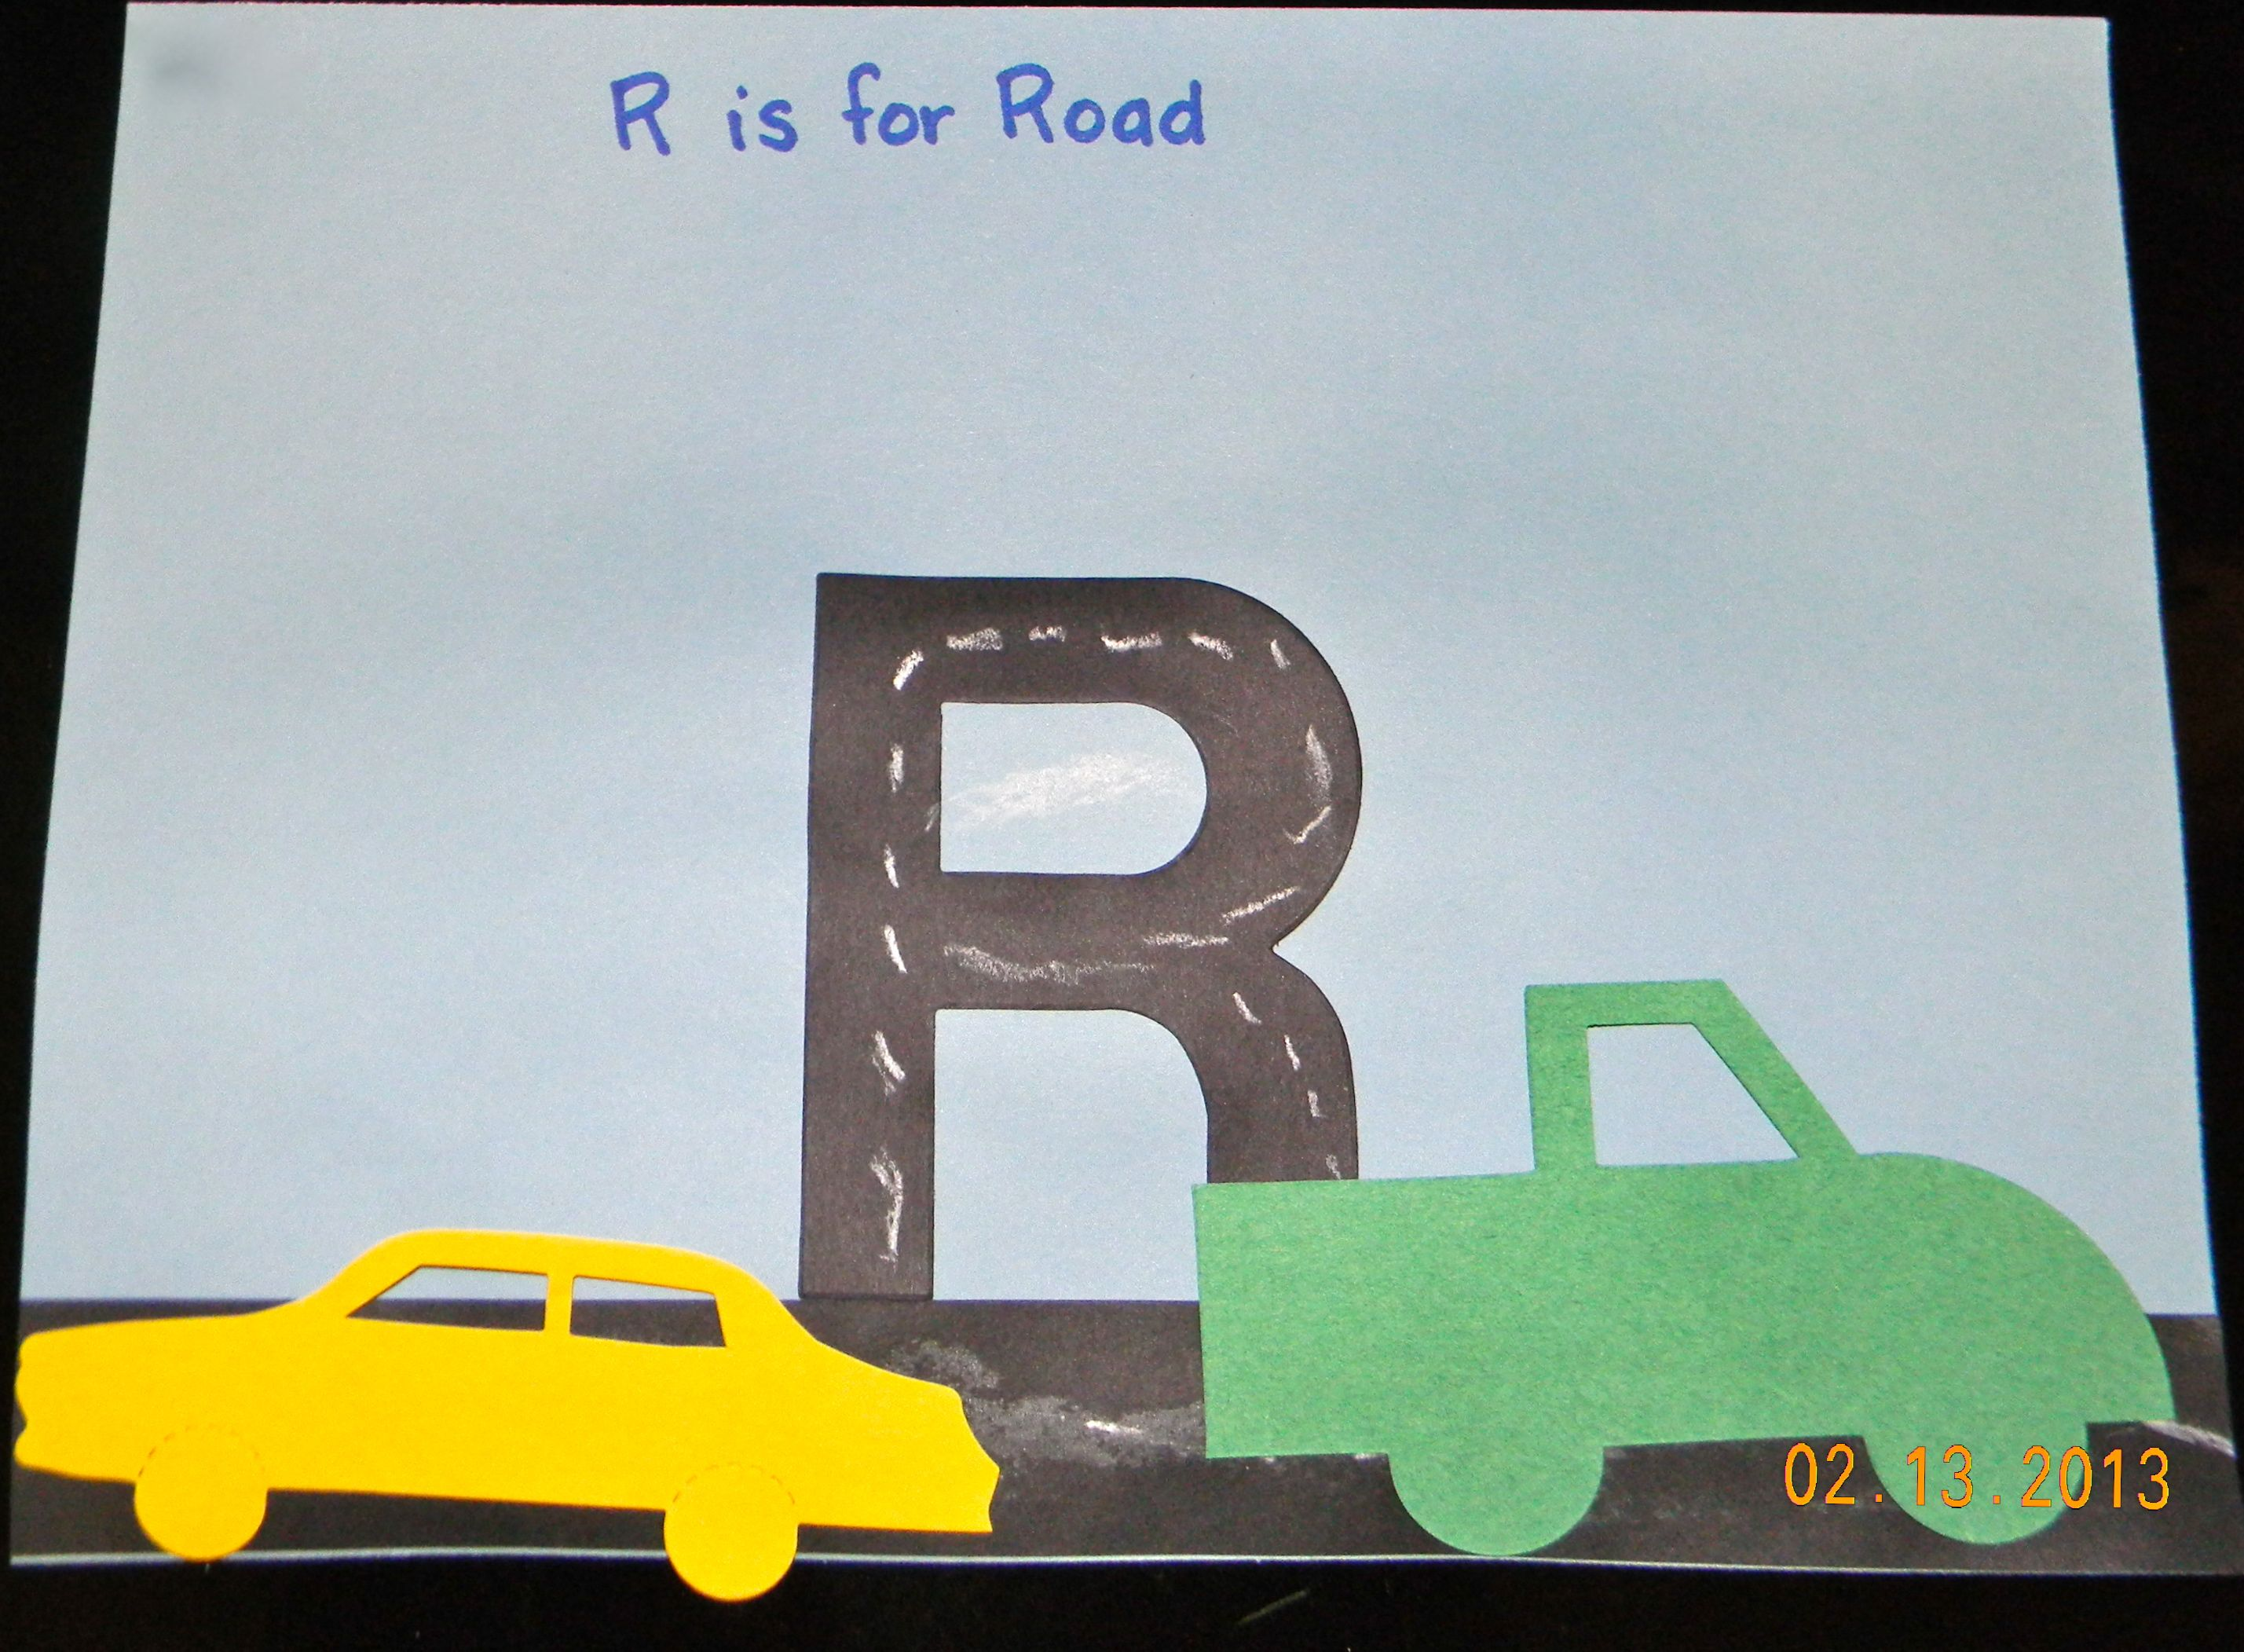 Drawing Lines In R : Letter r craft kids liked using the chalk to draw street